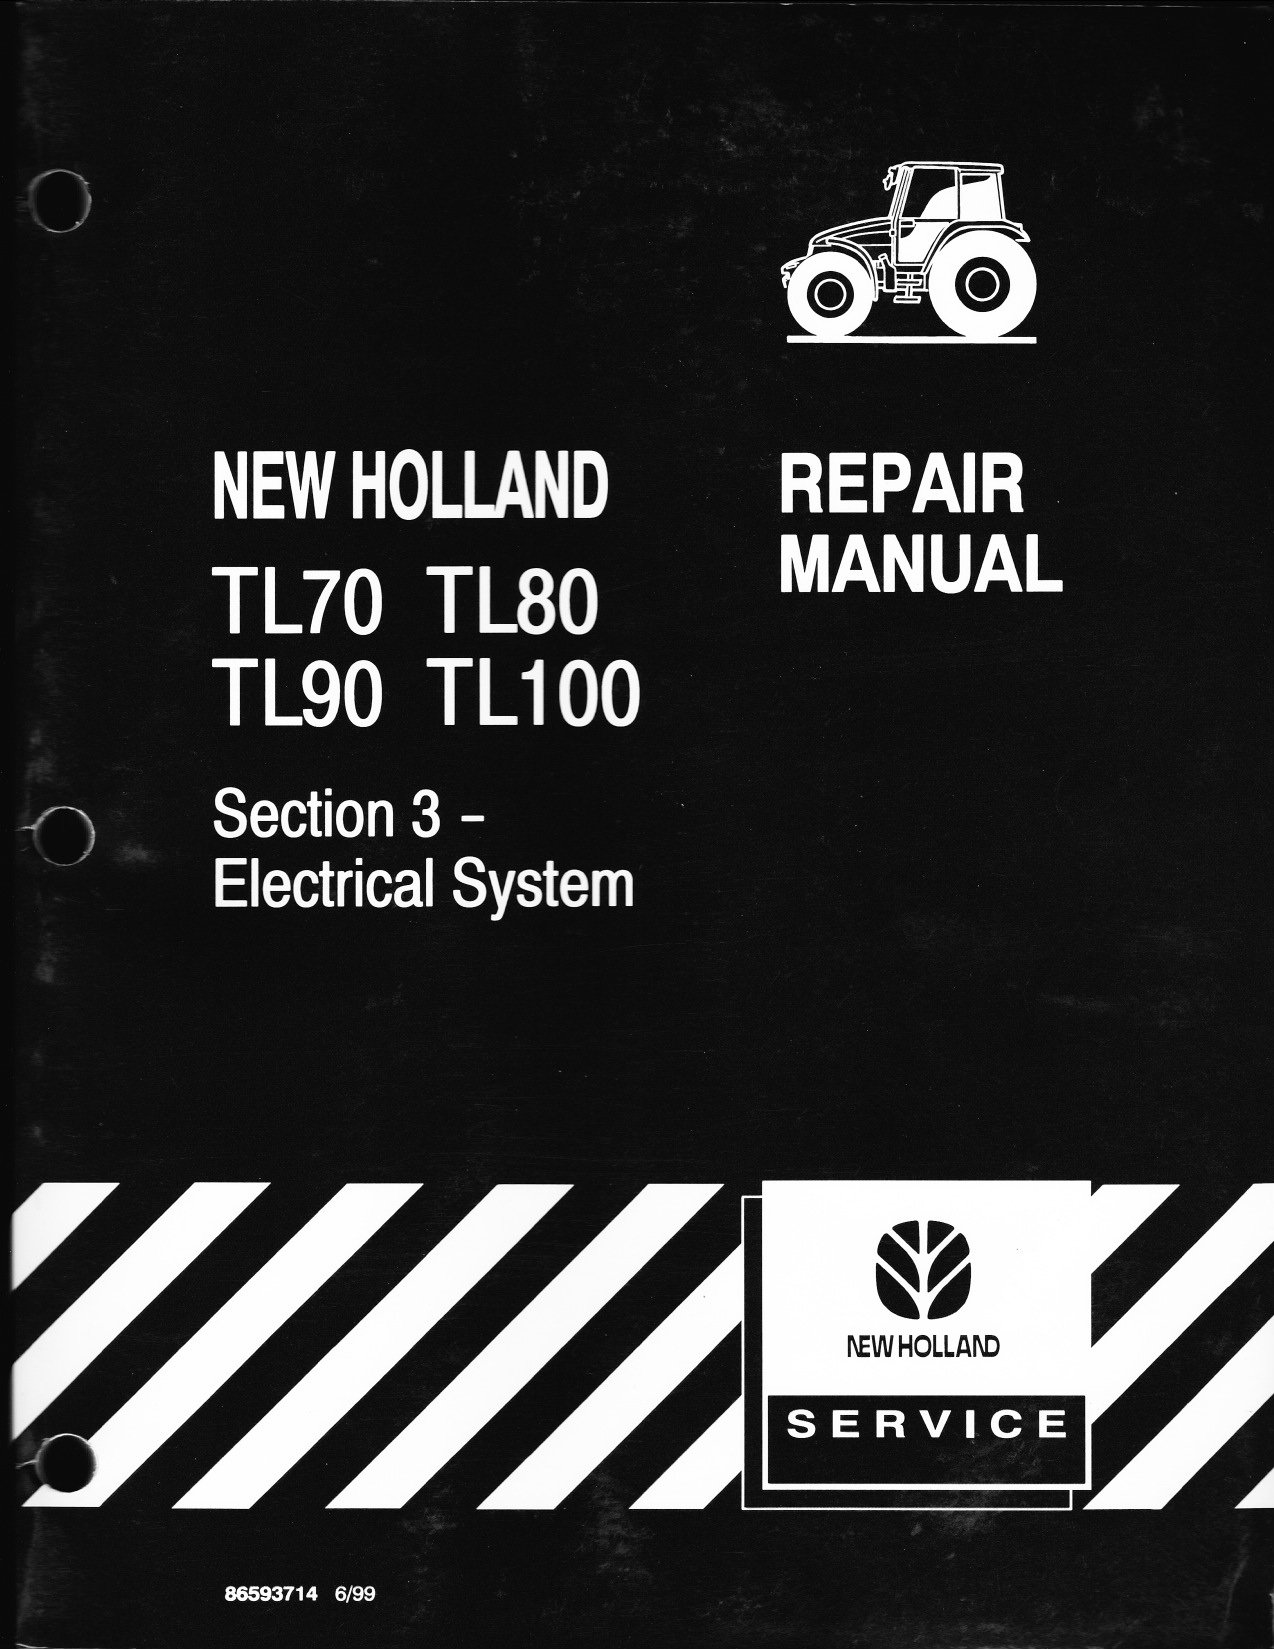 TL 80 two wheel drive ROPS tractor will not start with key switch. New Holland Tl Ac Wiring Diagrams on